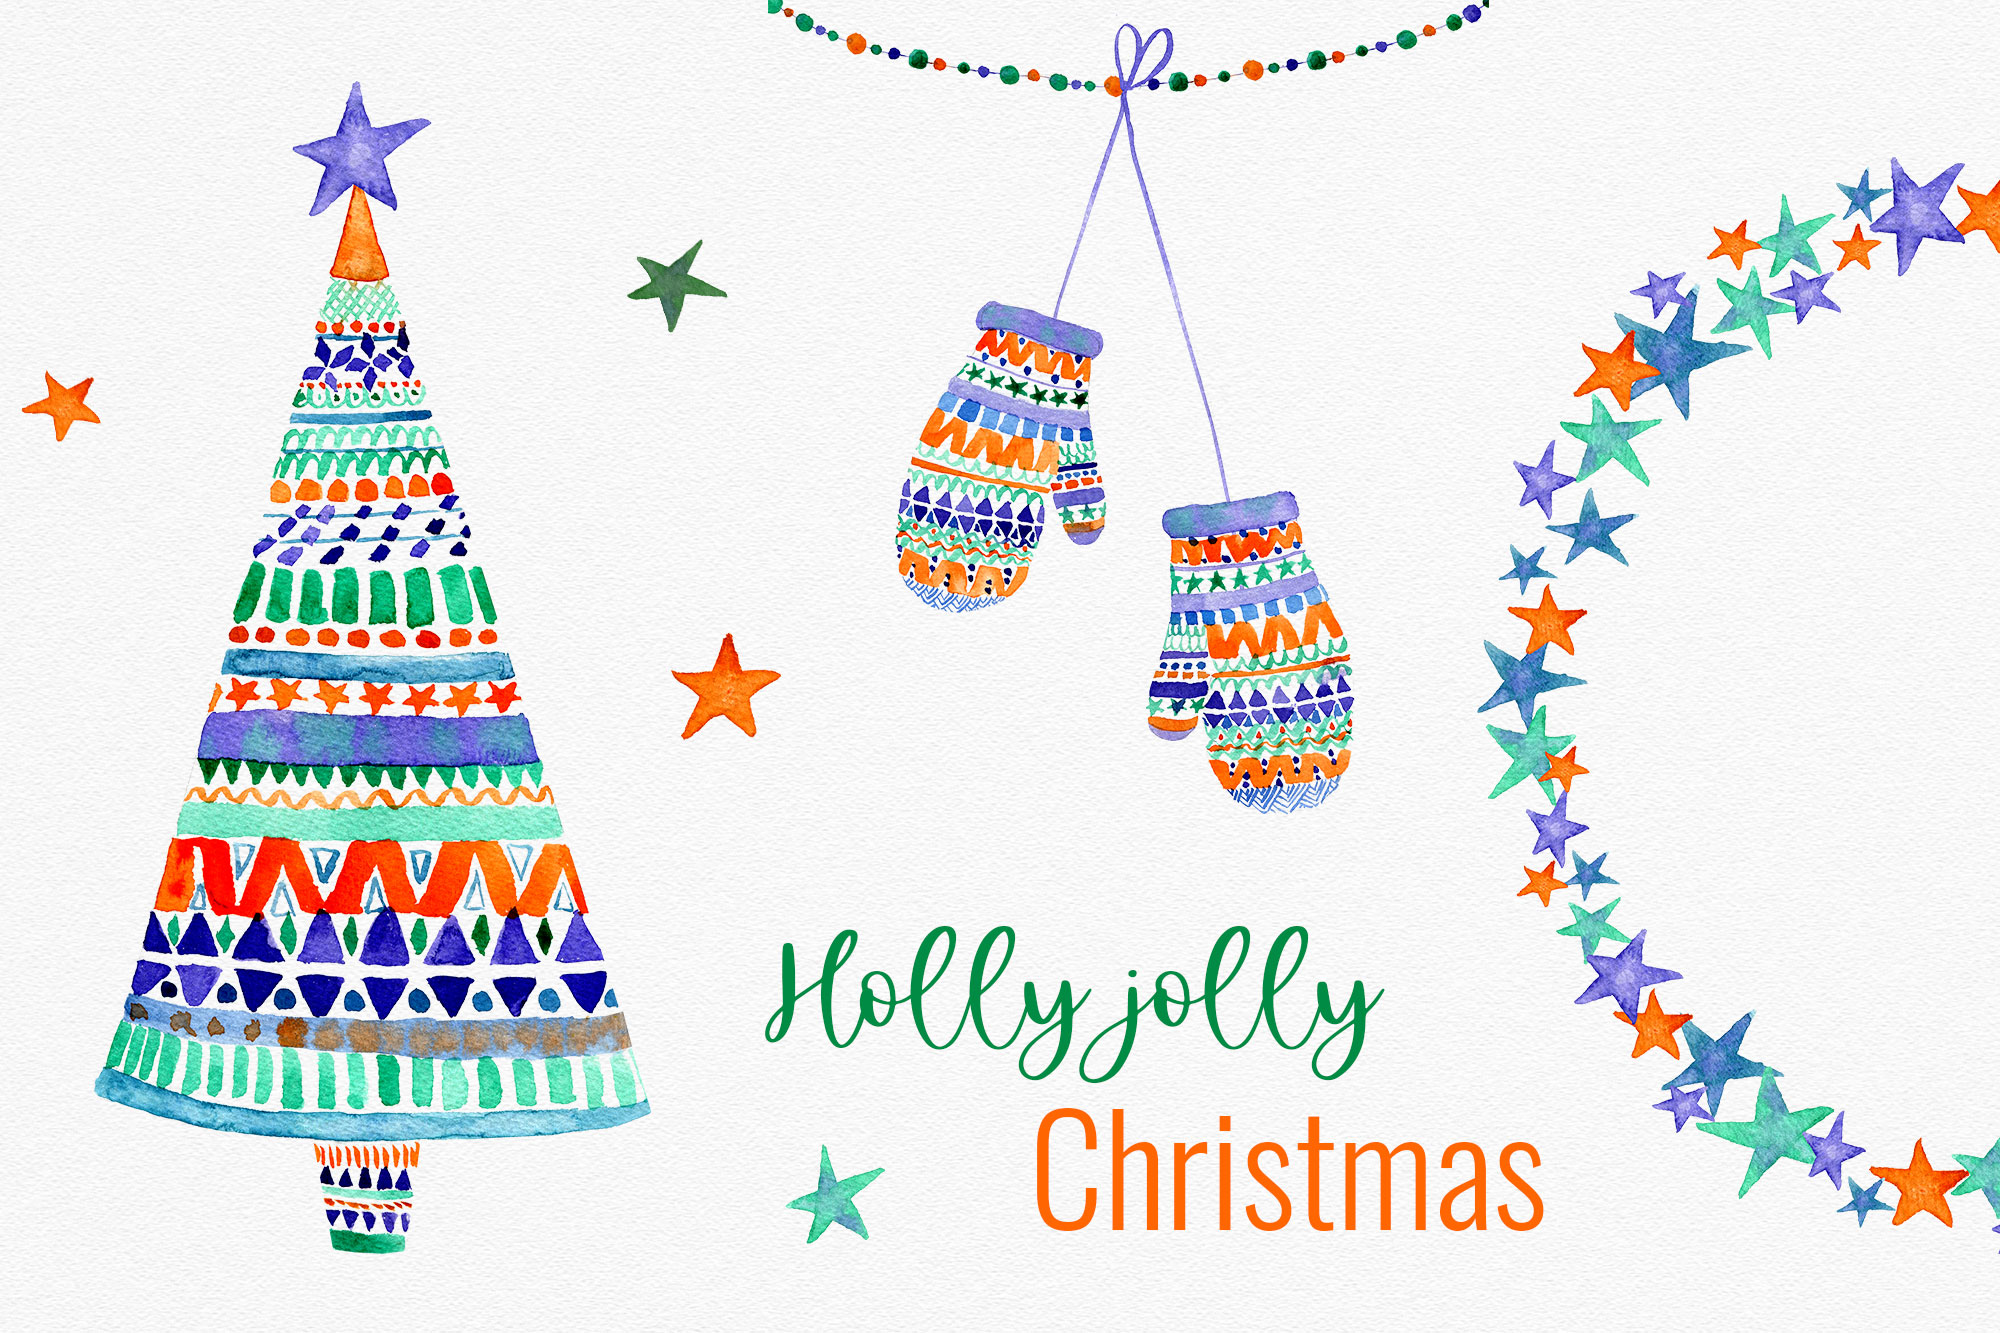 Holly Jolly Christmas Cliparts Graphic By Reddotshouse